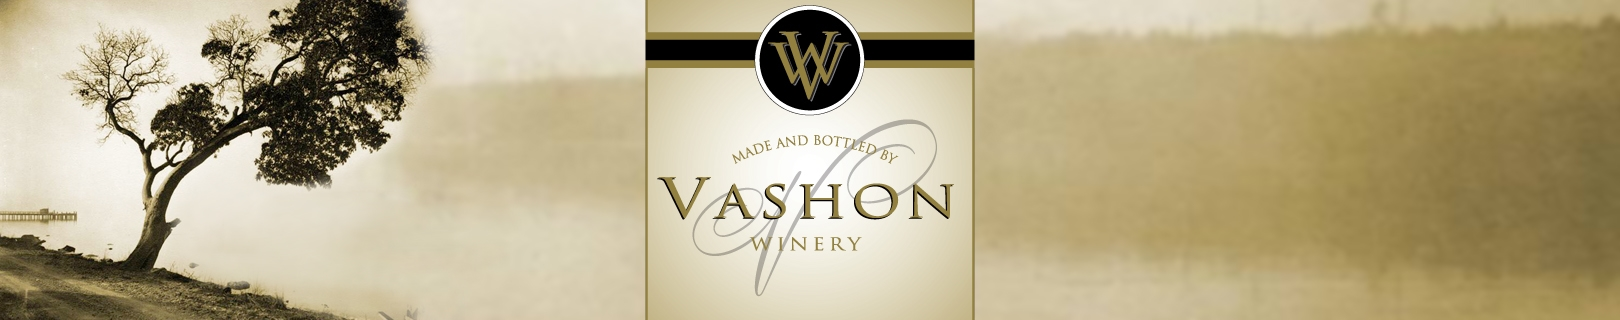 vashon-winery-WA-usa-jpg